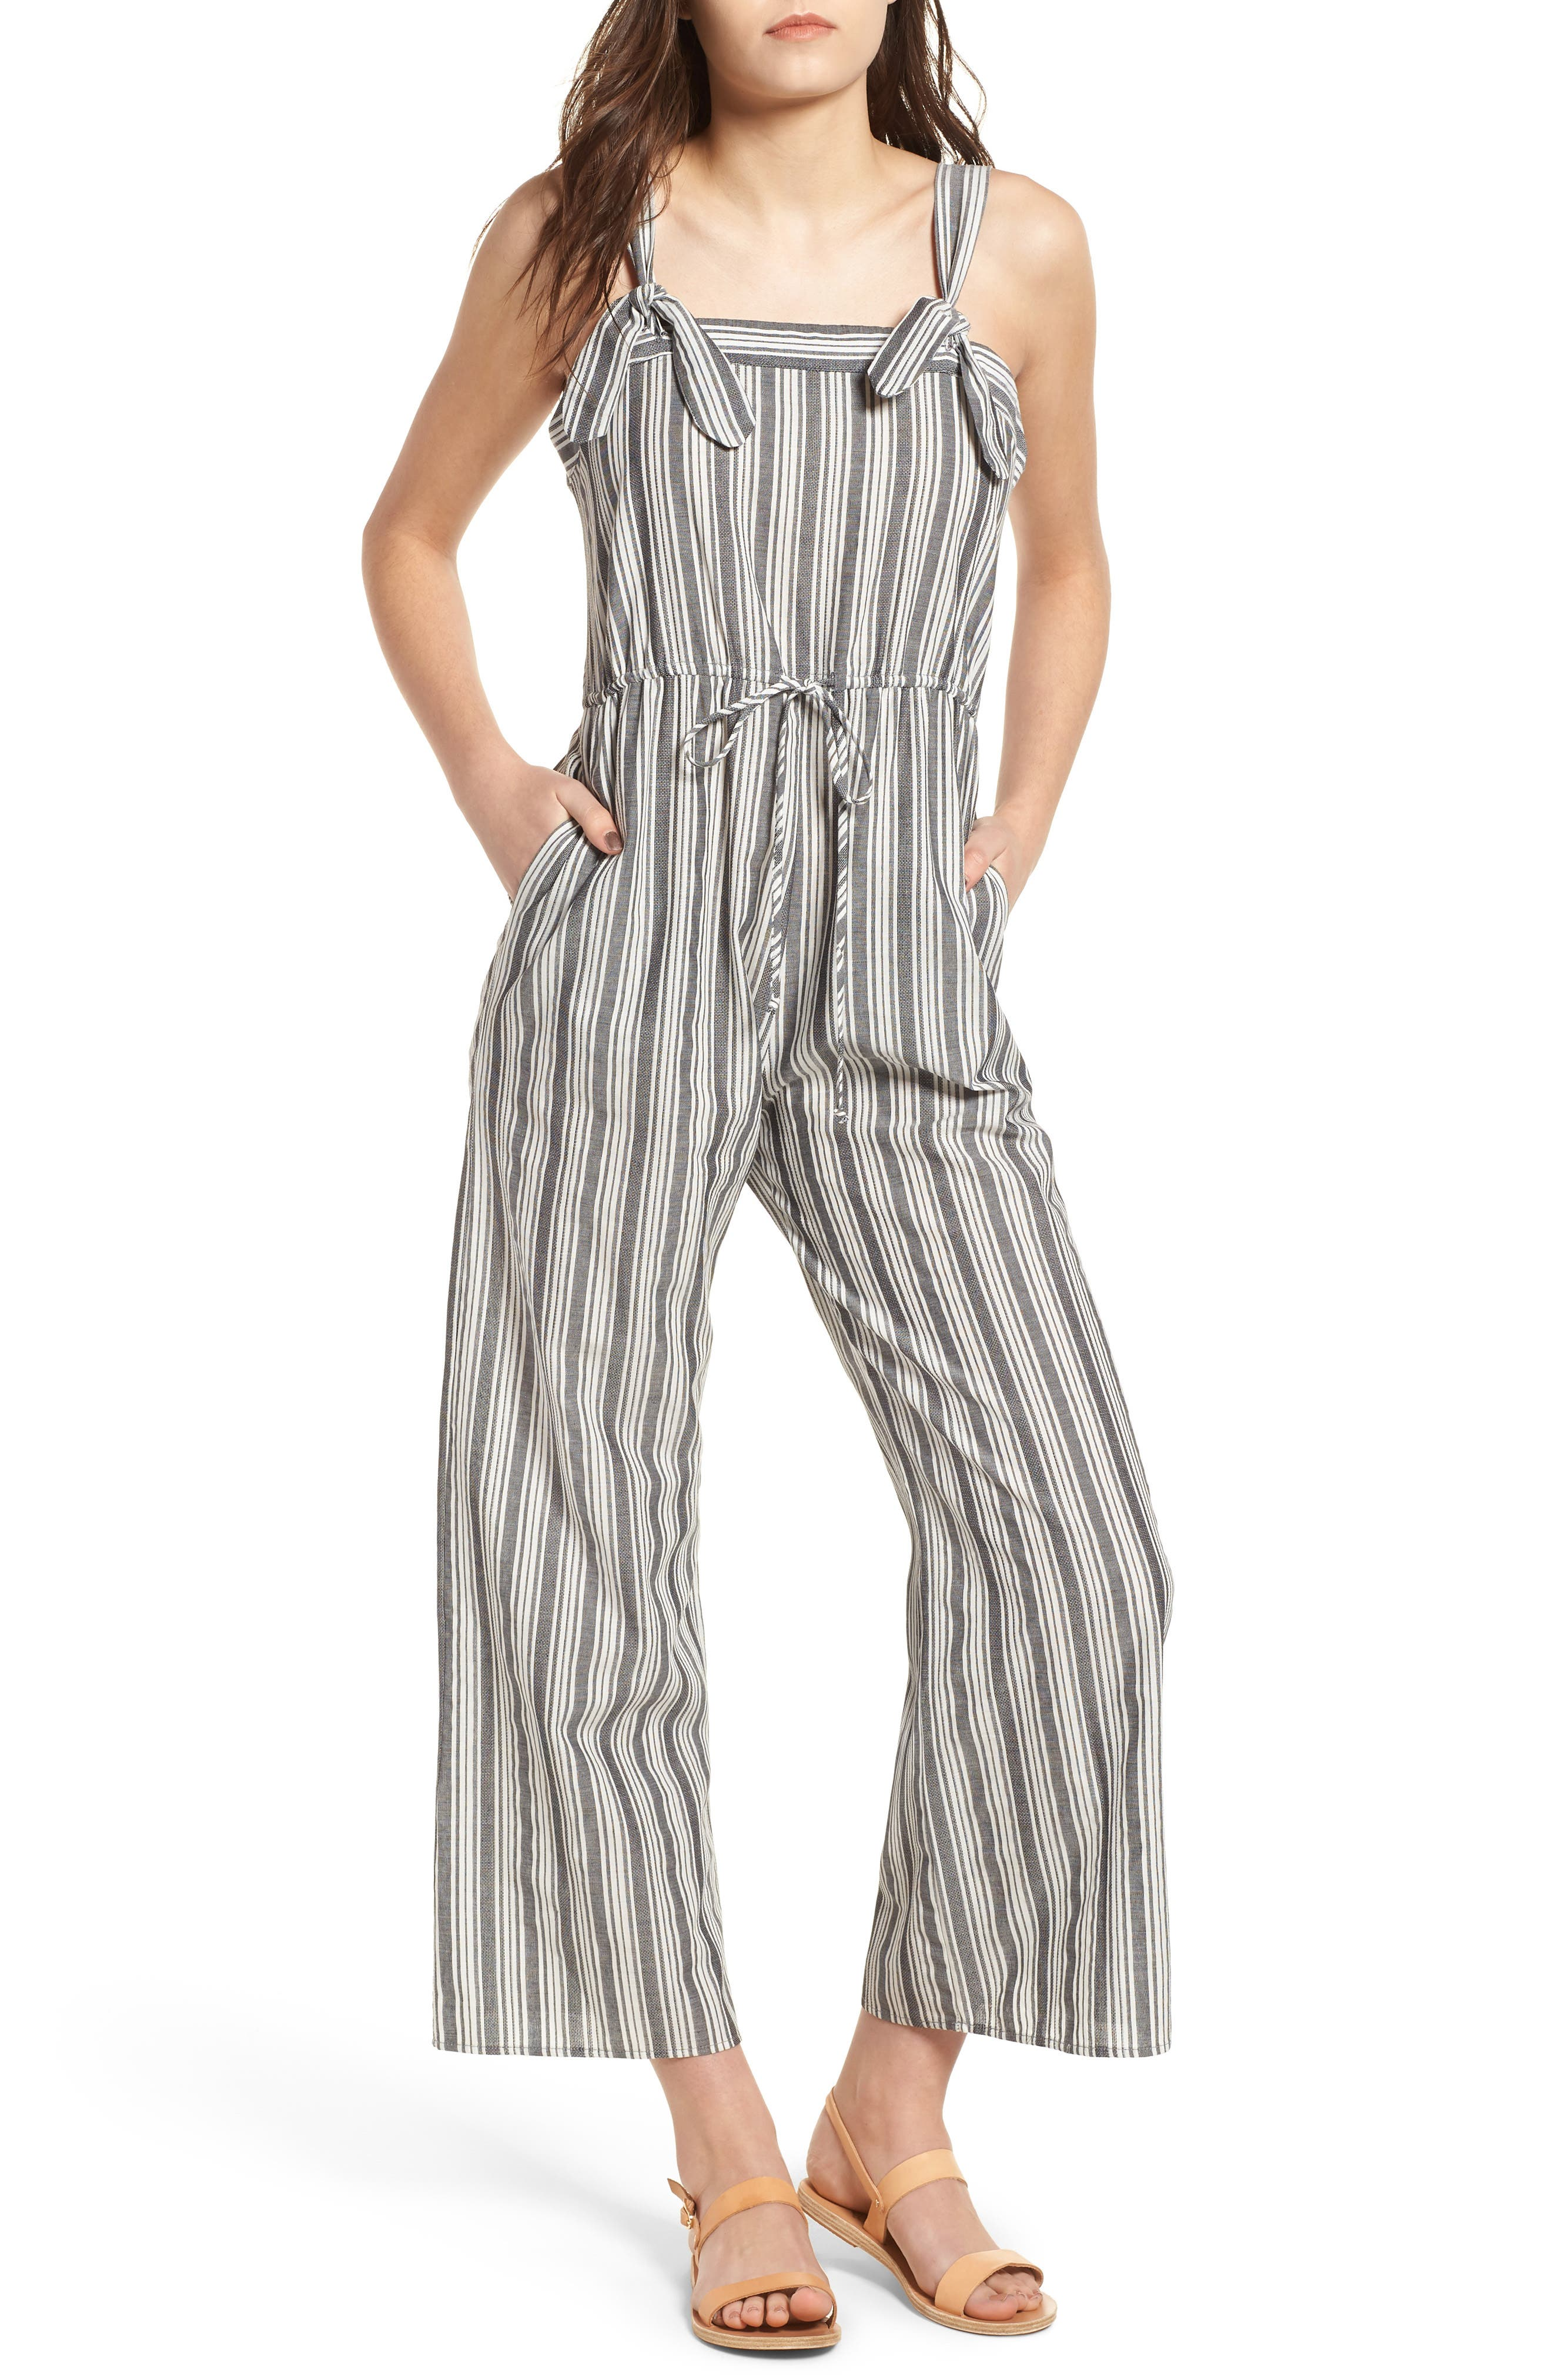 Stripe Knot Strap Jumpsuit,                             Main thumbnail 1, color,                             WHITE SUN STRIPE